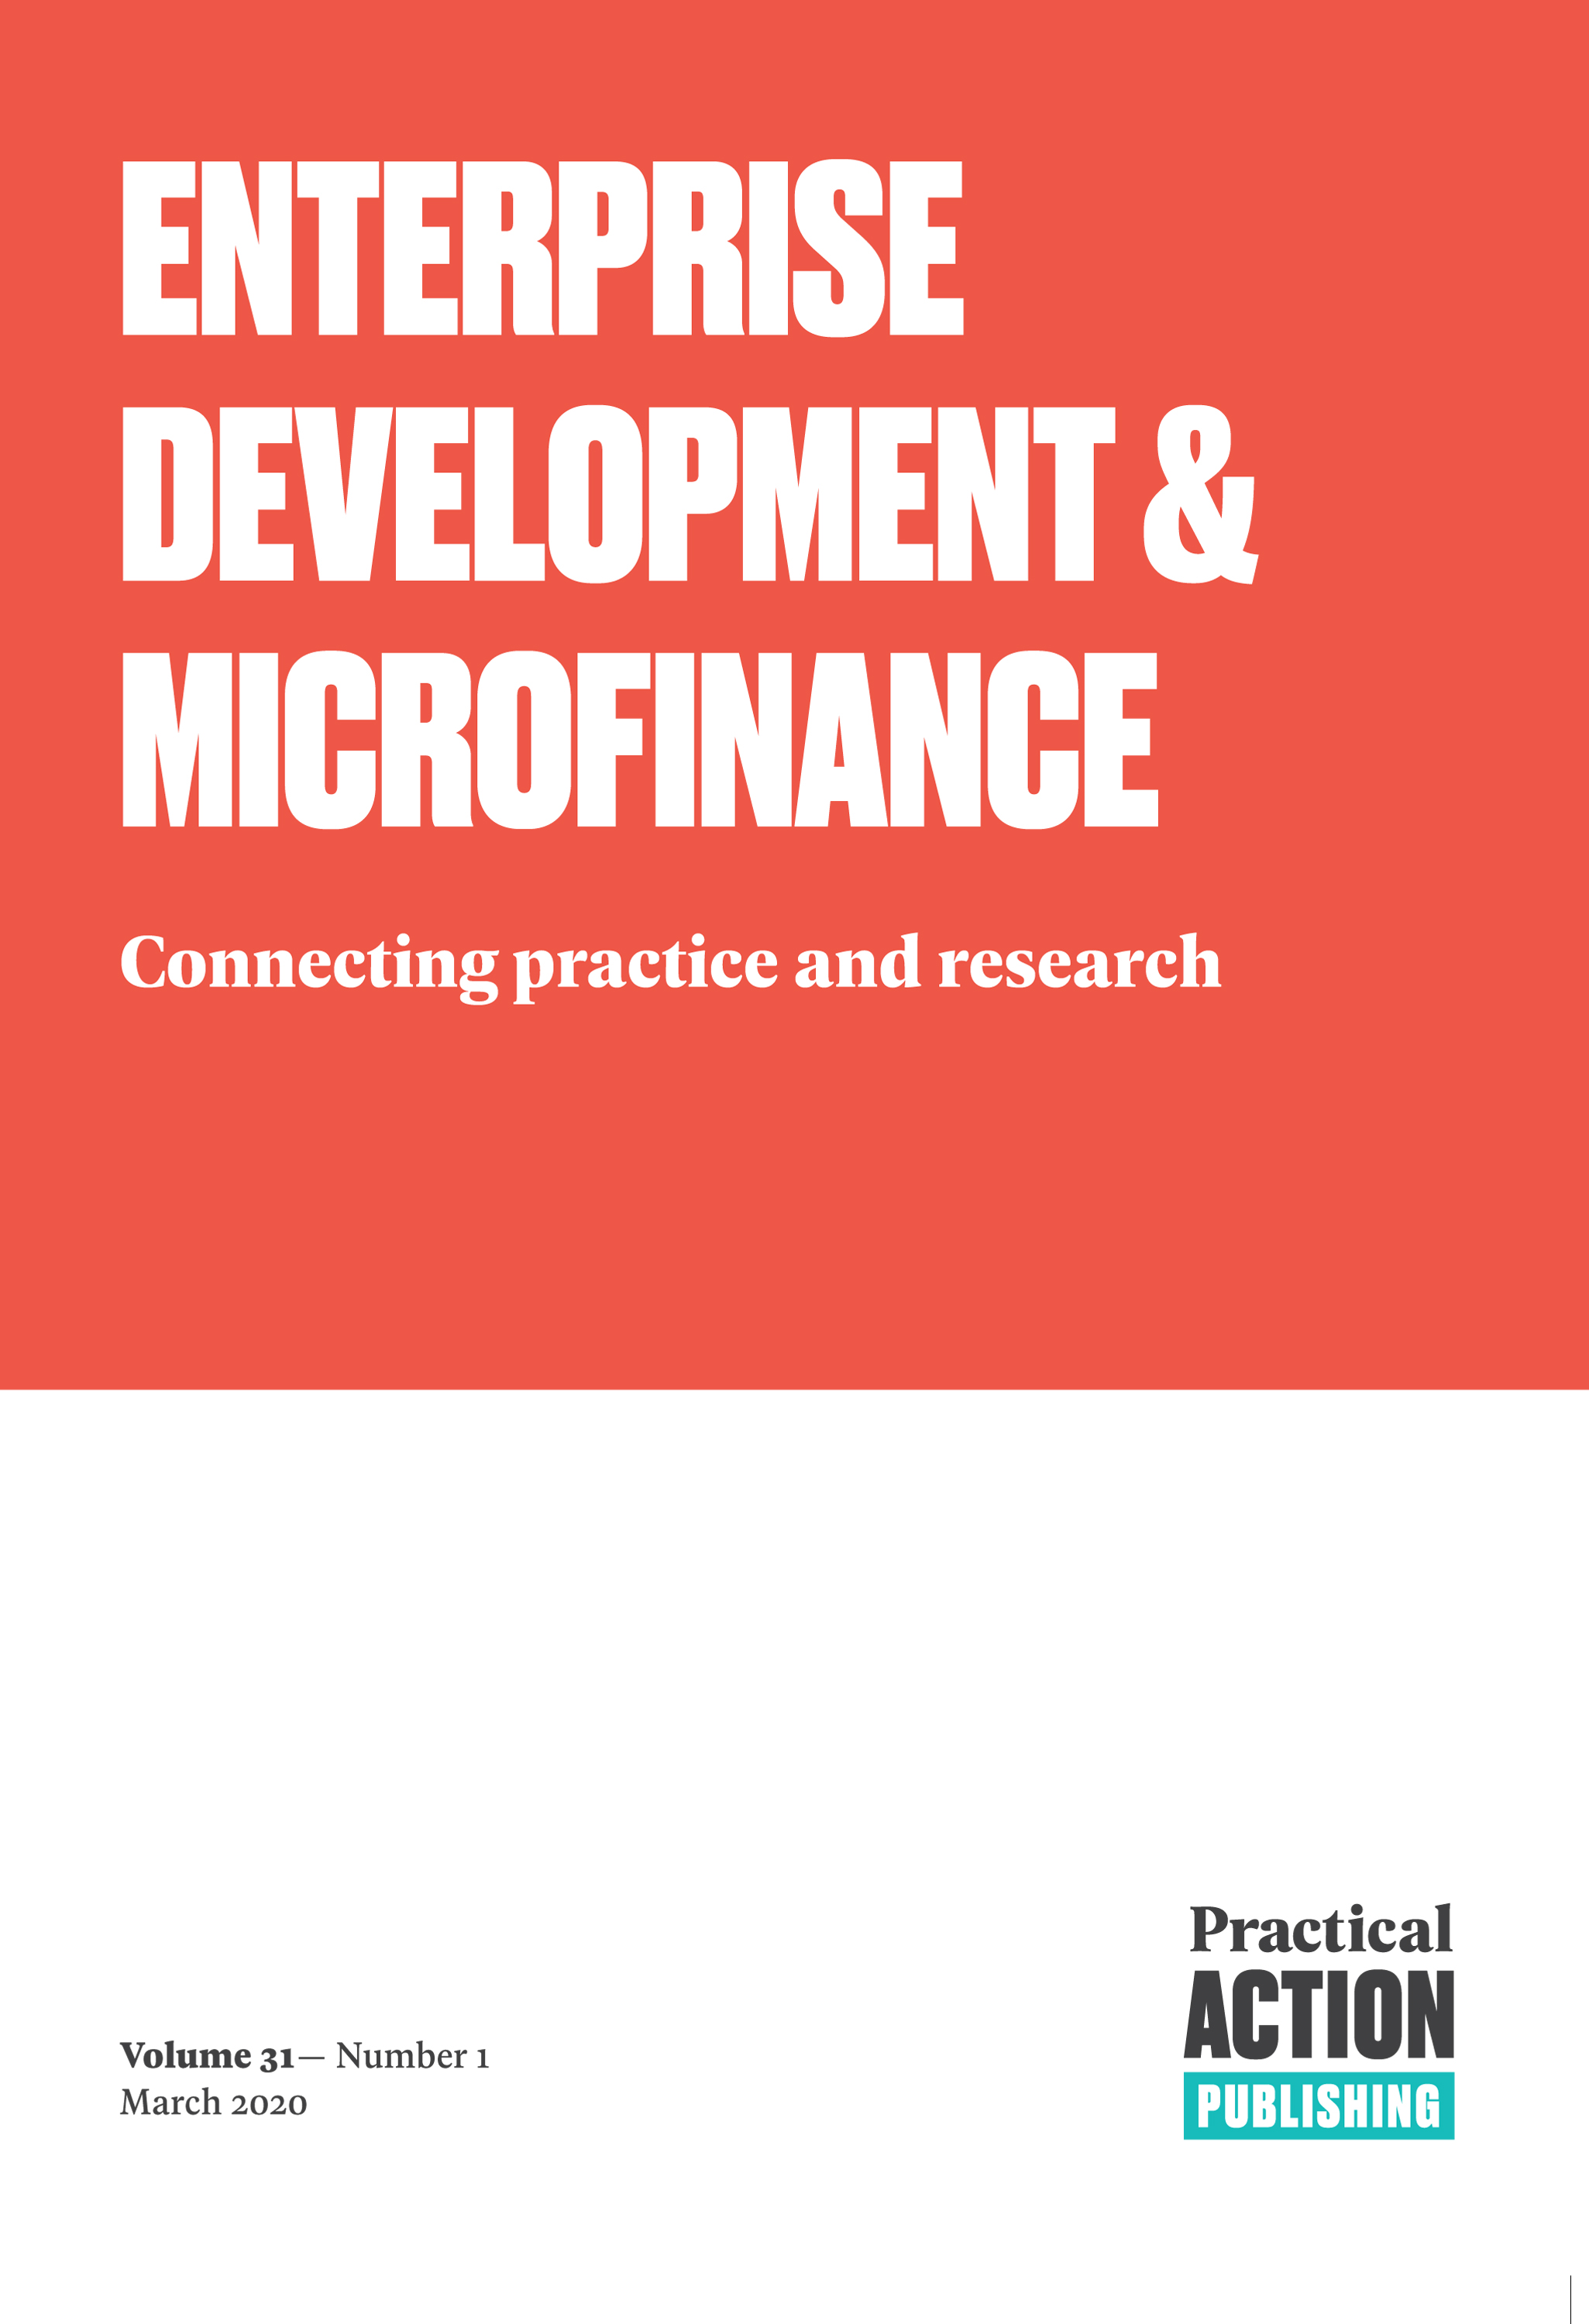 ICTs, microfinance and enterprise development